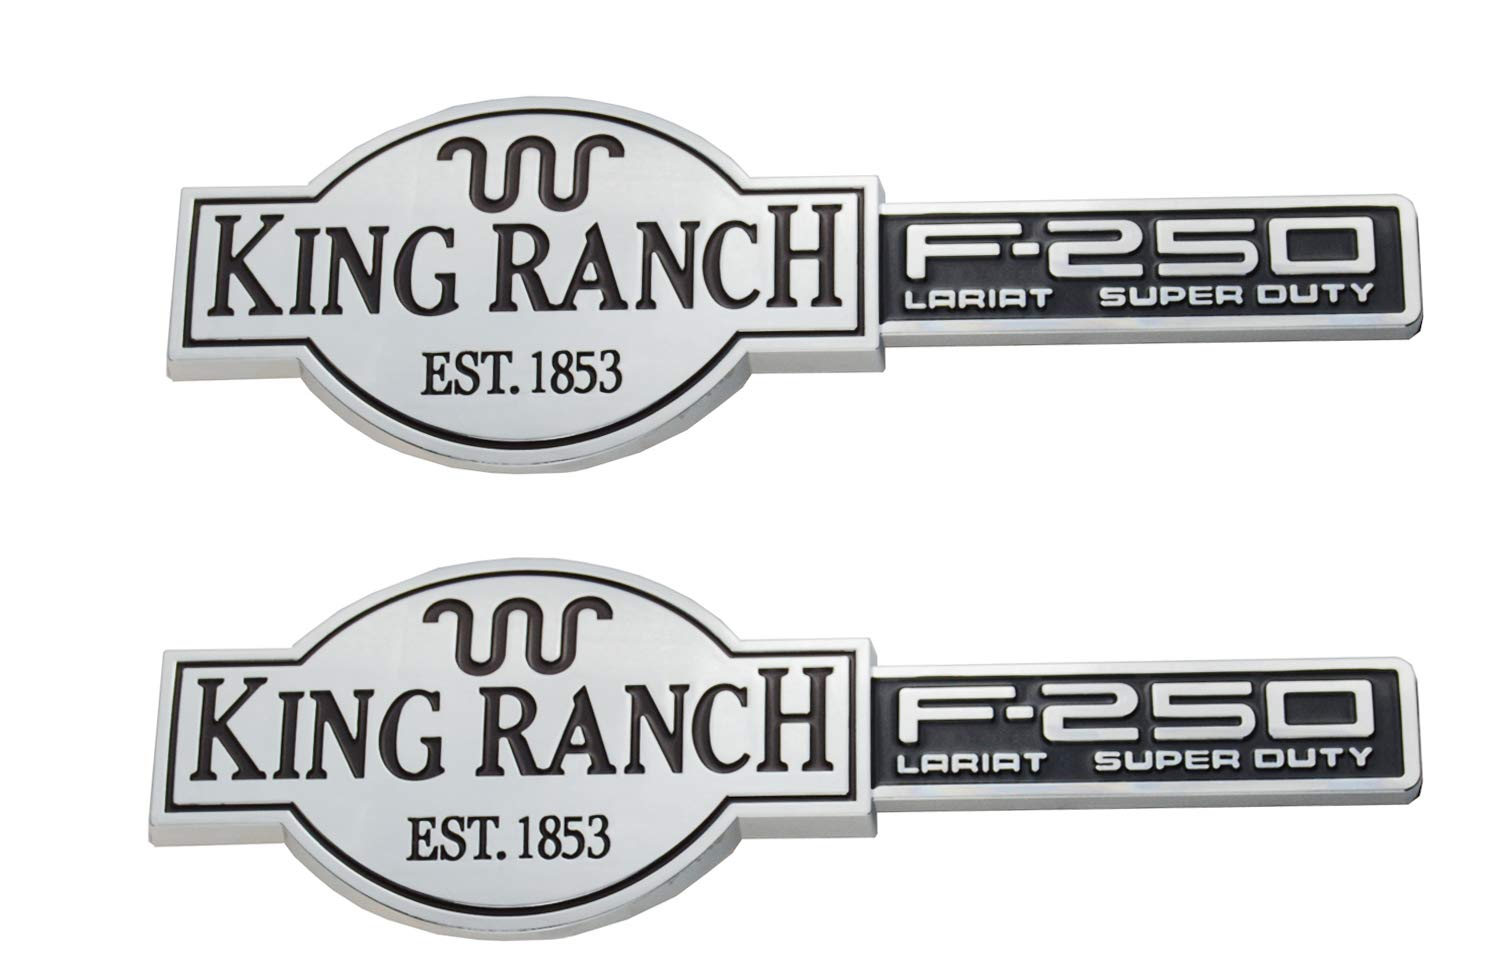 F250 KING RANCH LARIAT SUPER DUTY Emblems 3D Badges Door Tailgate Replacement for F-250 Chrome Black